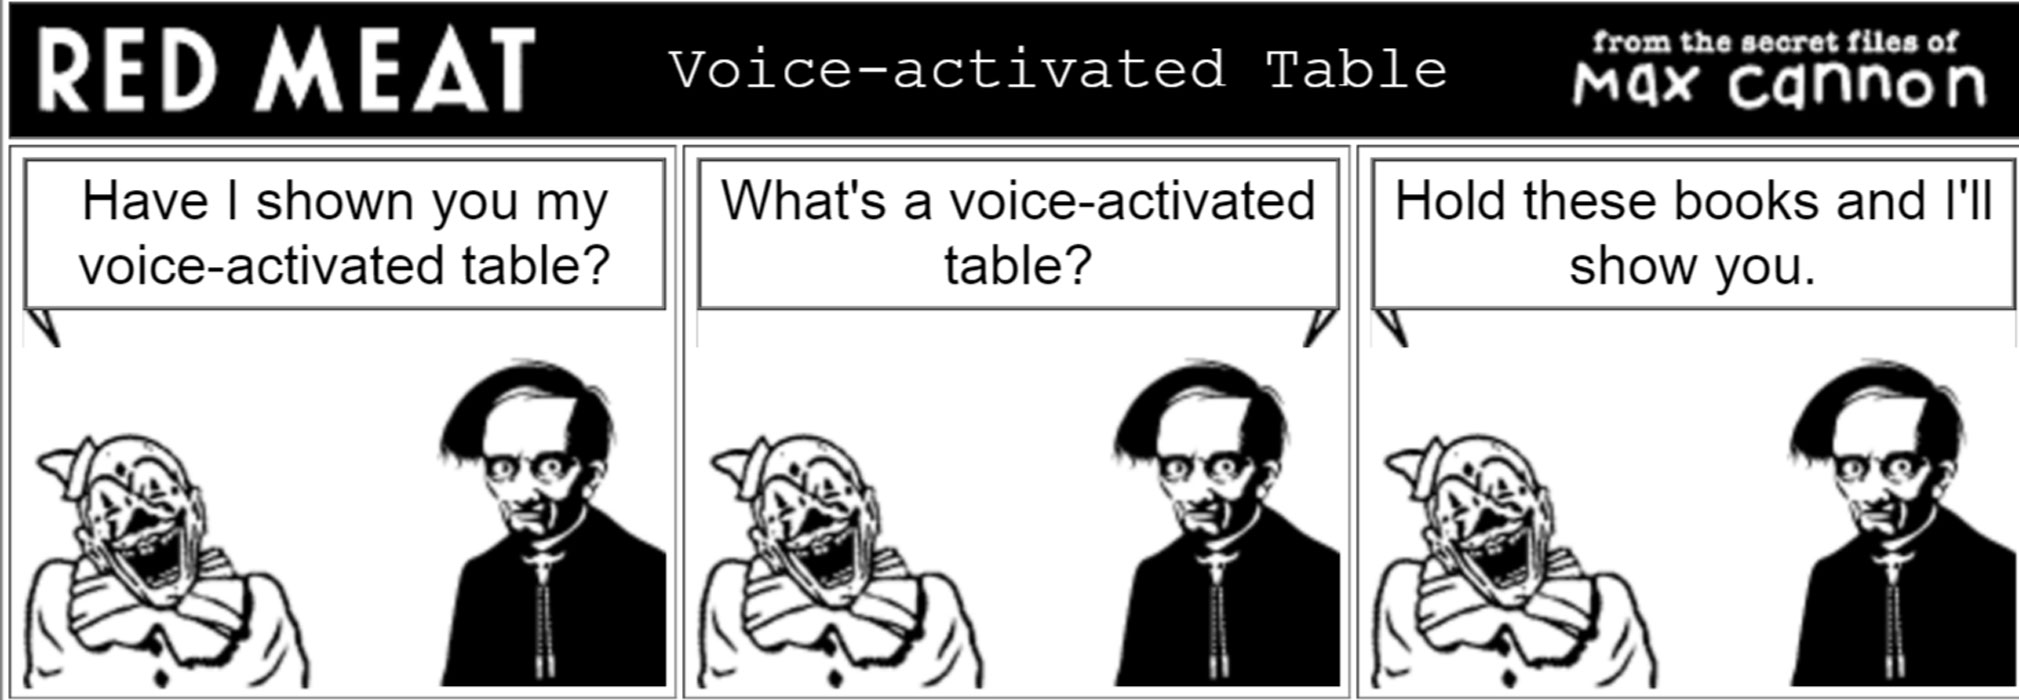 Voice-activated-Table-700px